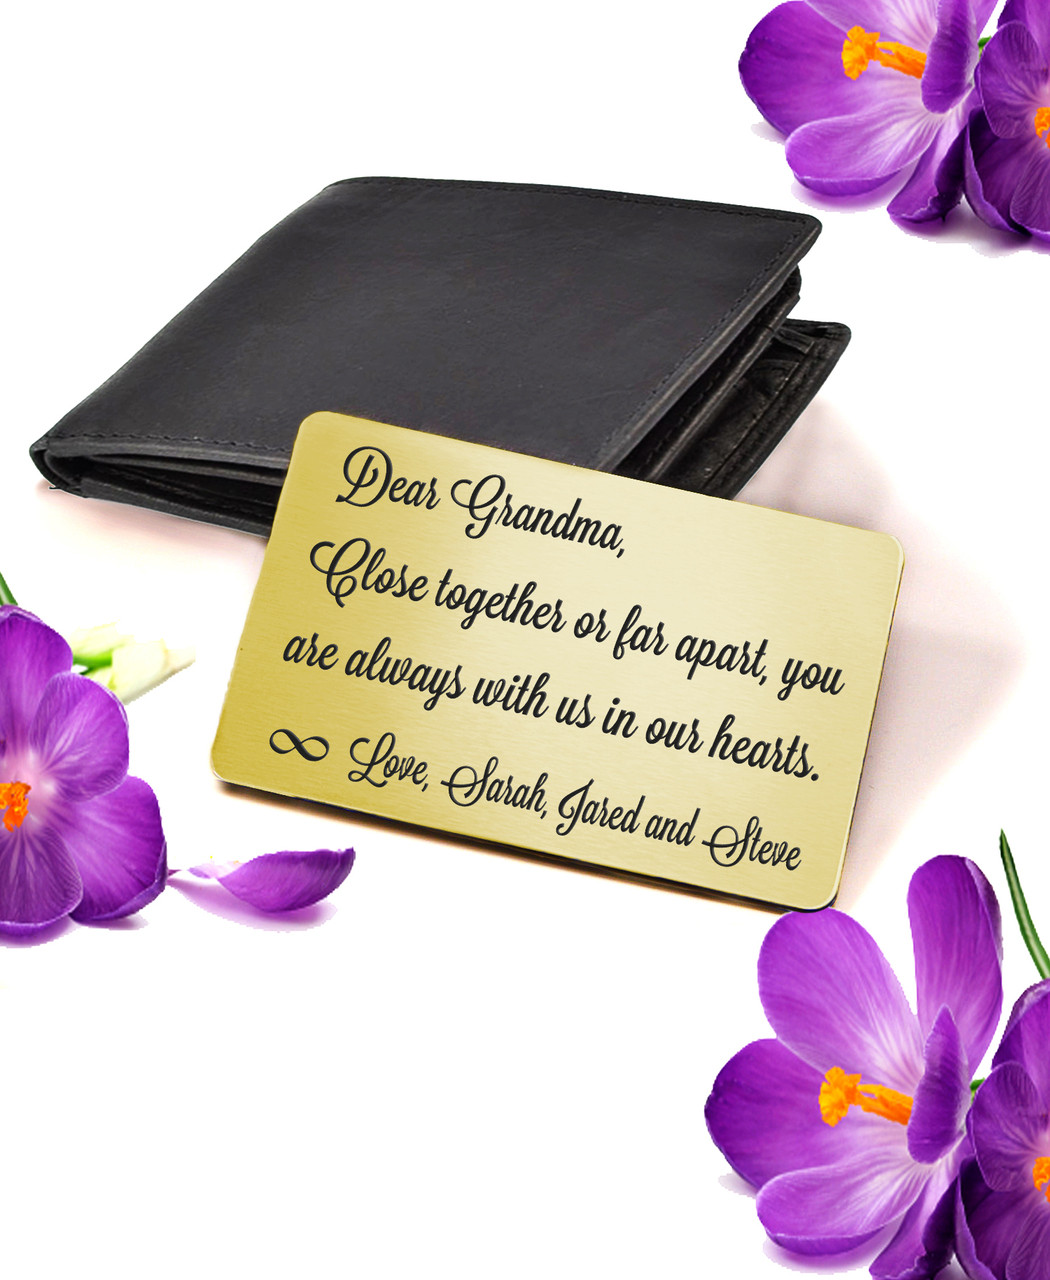 LUX - Personalized Wallet Card  - For Her Close Together